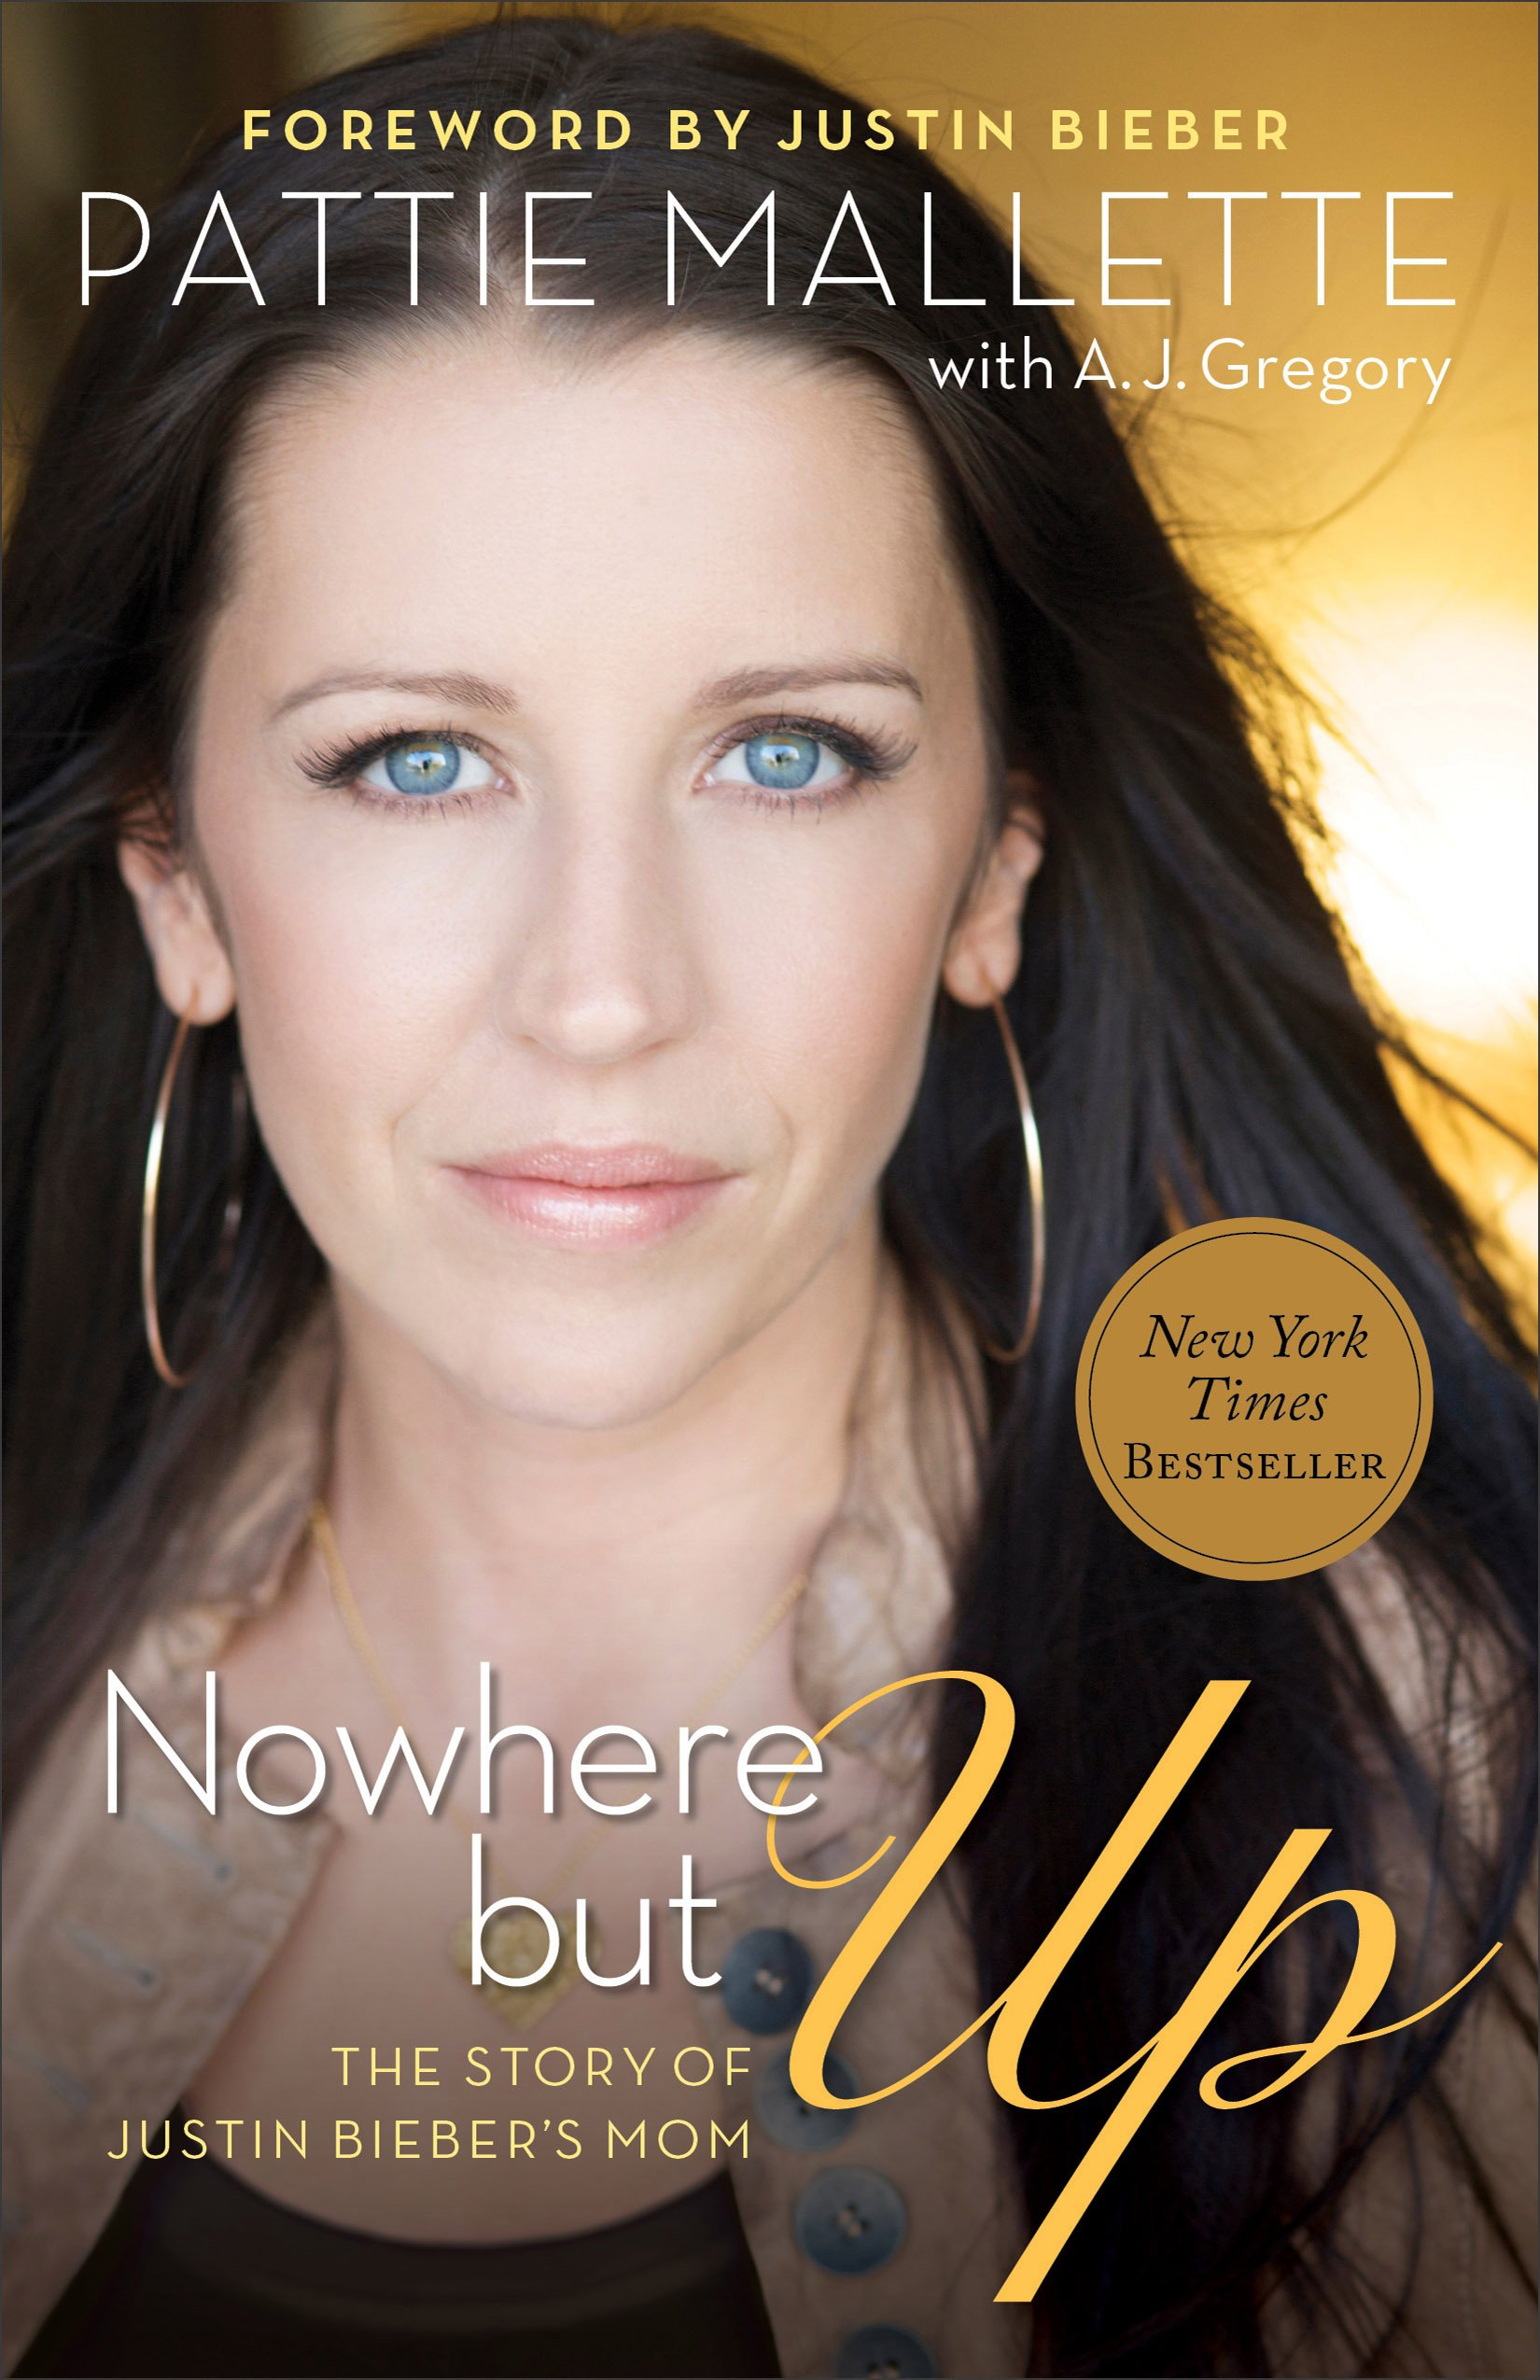 Nowhere But Up The Story Of Justin Bieber S Mom Pattie Mallette